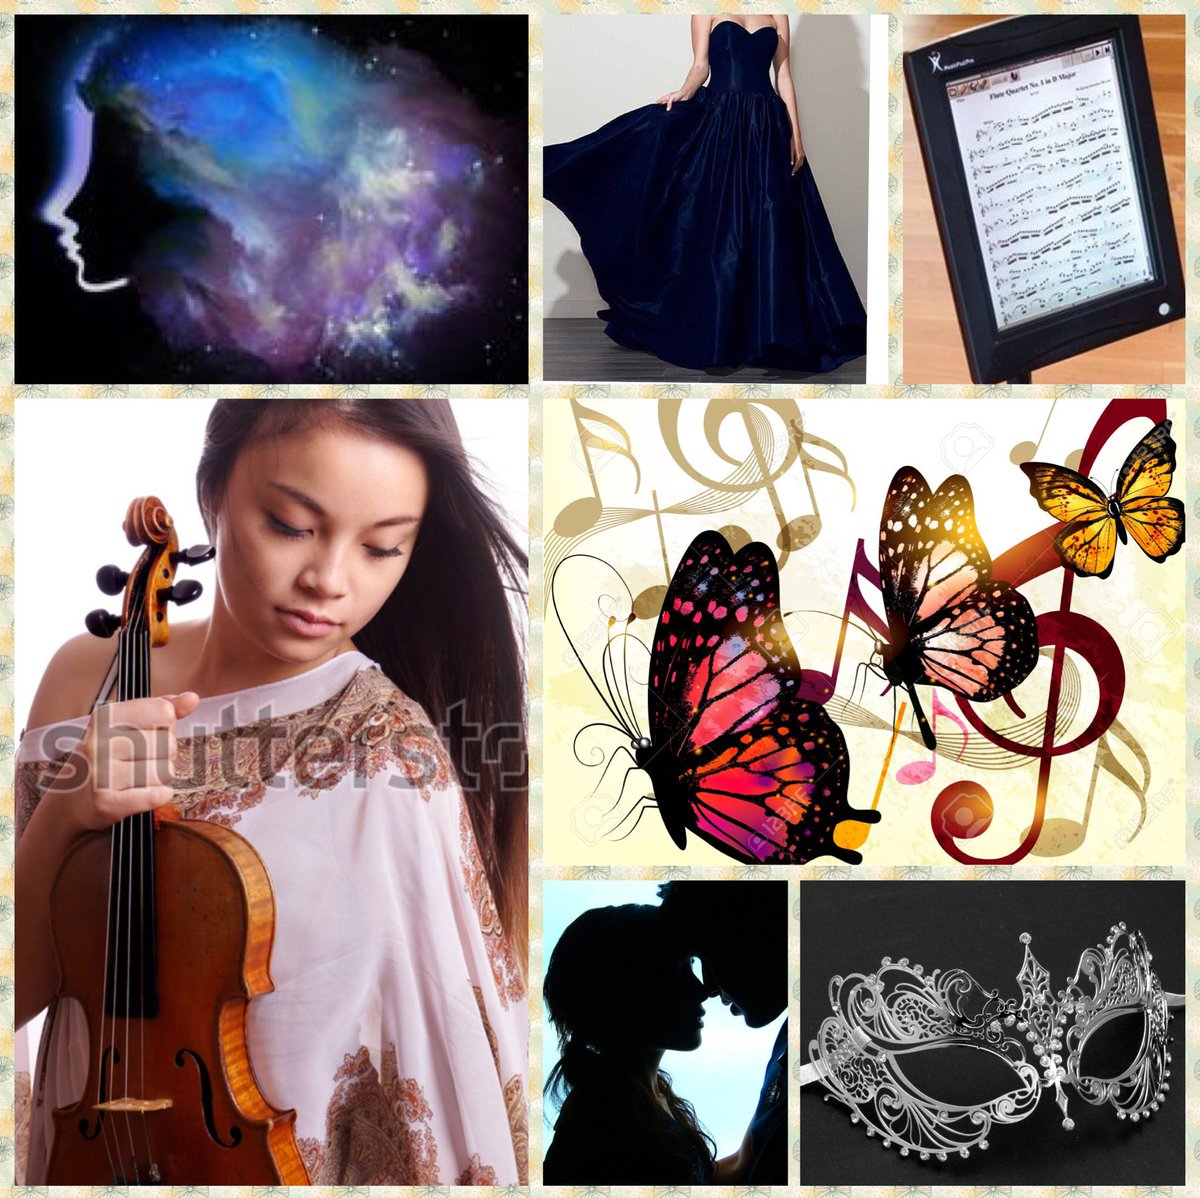 #CharacterAesthetics for Iris Lei of STARSWEPT... aka Sci-Fi Cities & Classical Music 😜 https://t.co/n7VyqYNPvK